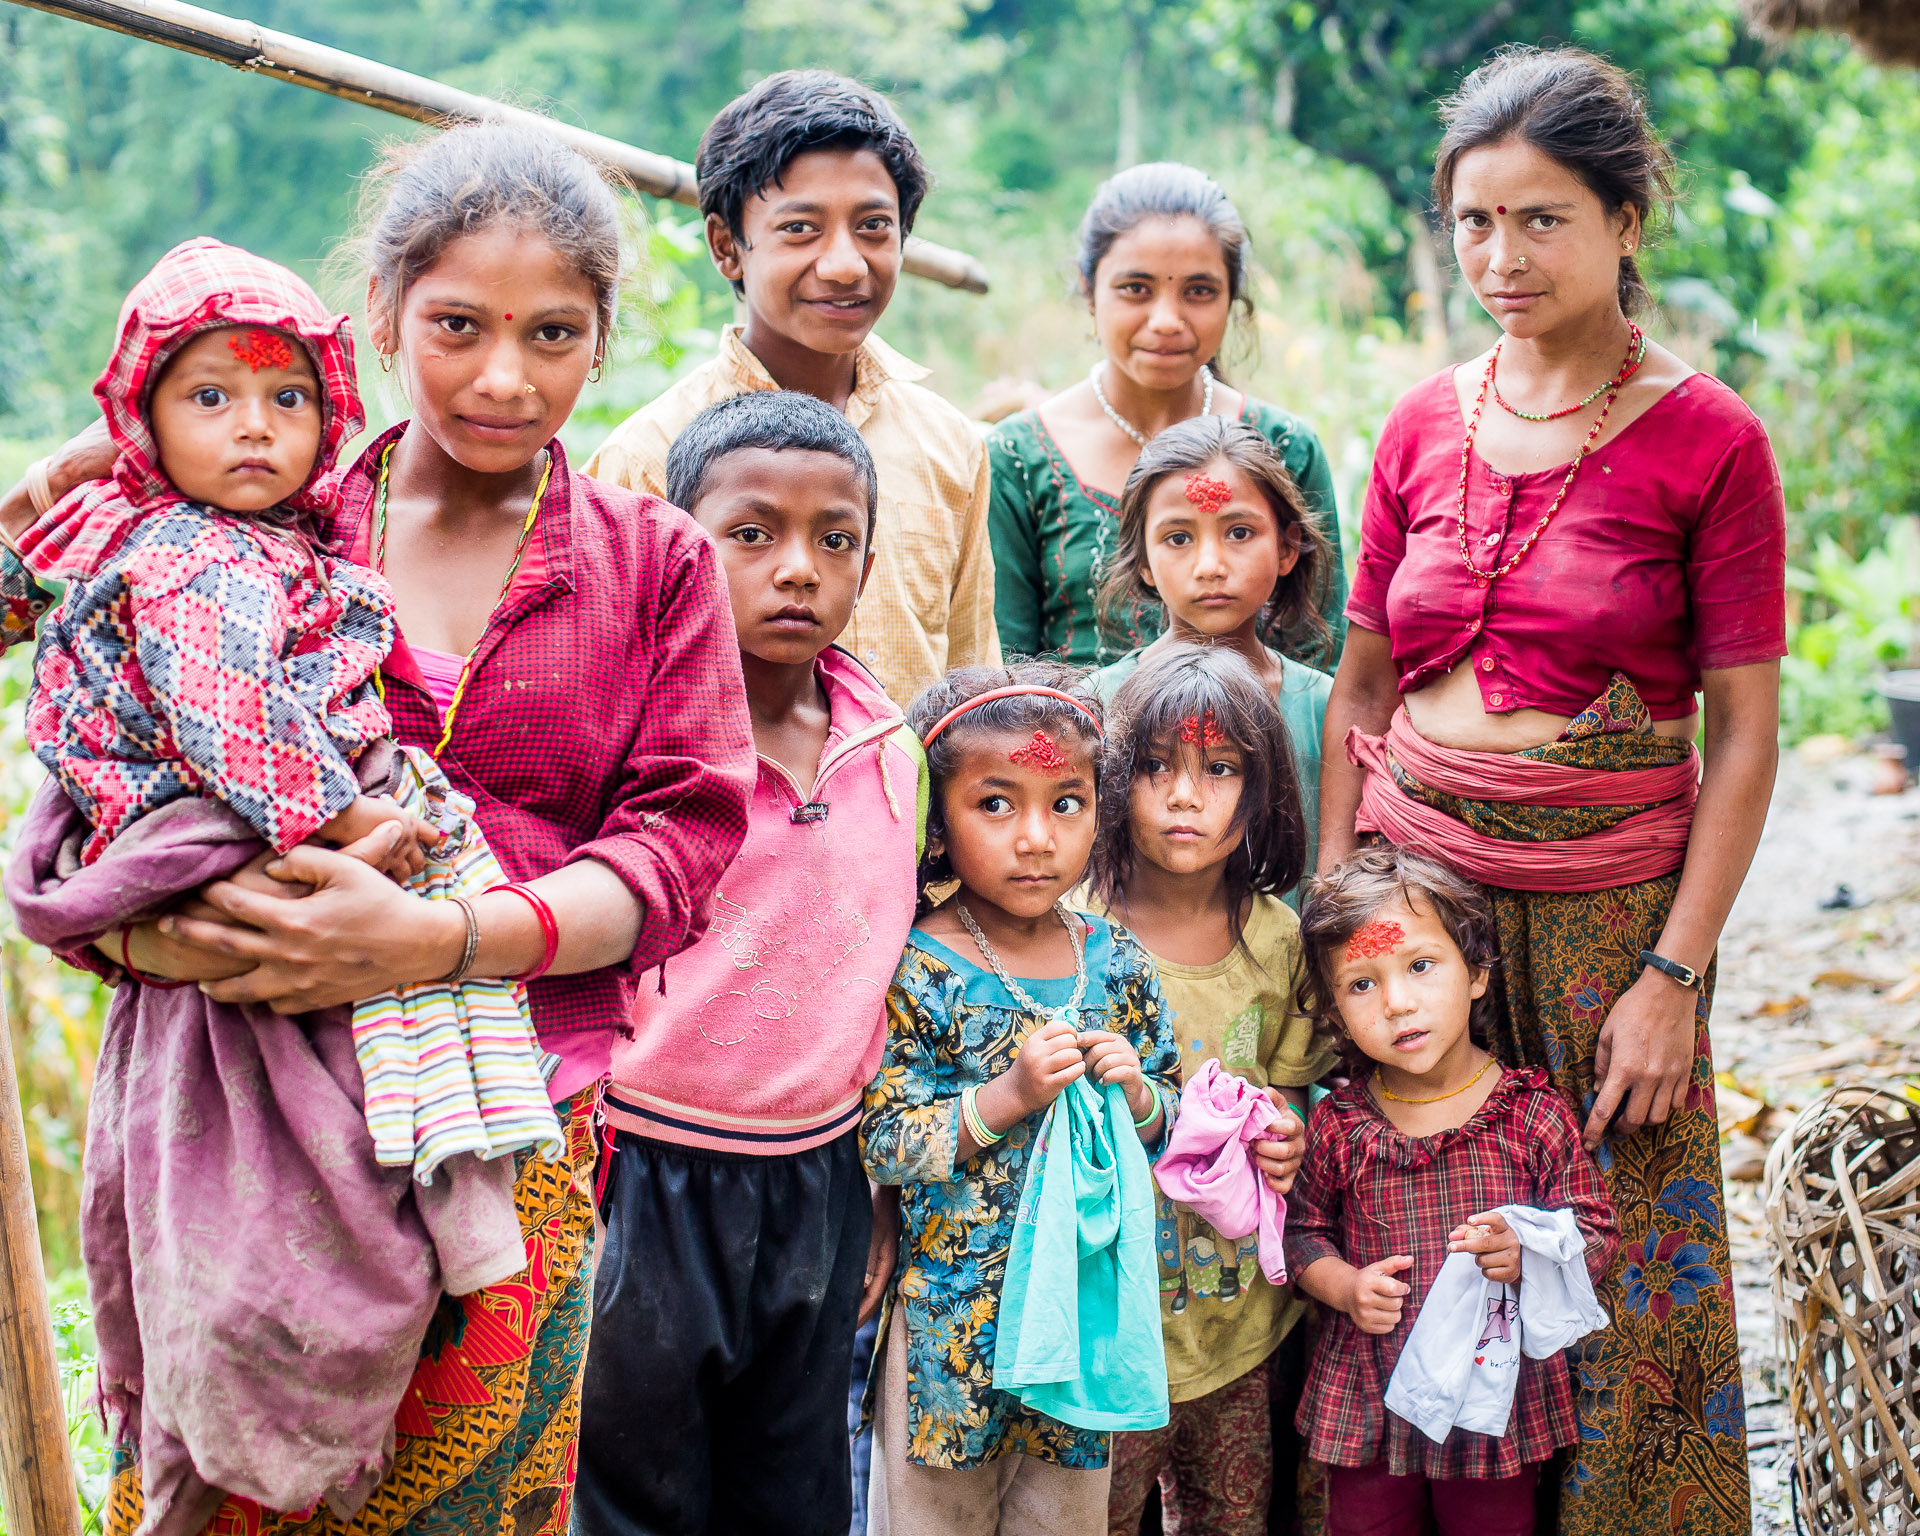 Two families: Micro-Care Nepal was able to give clothing to almost all these children.